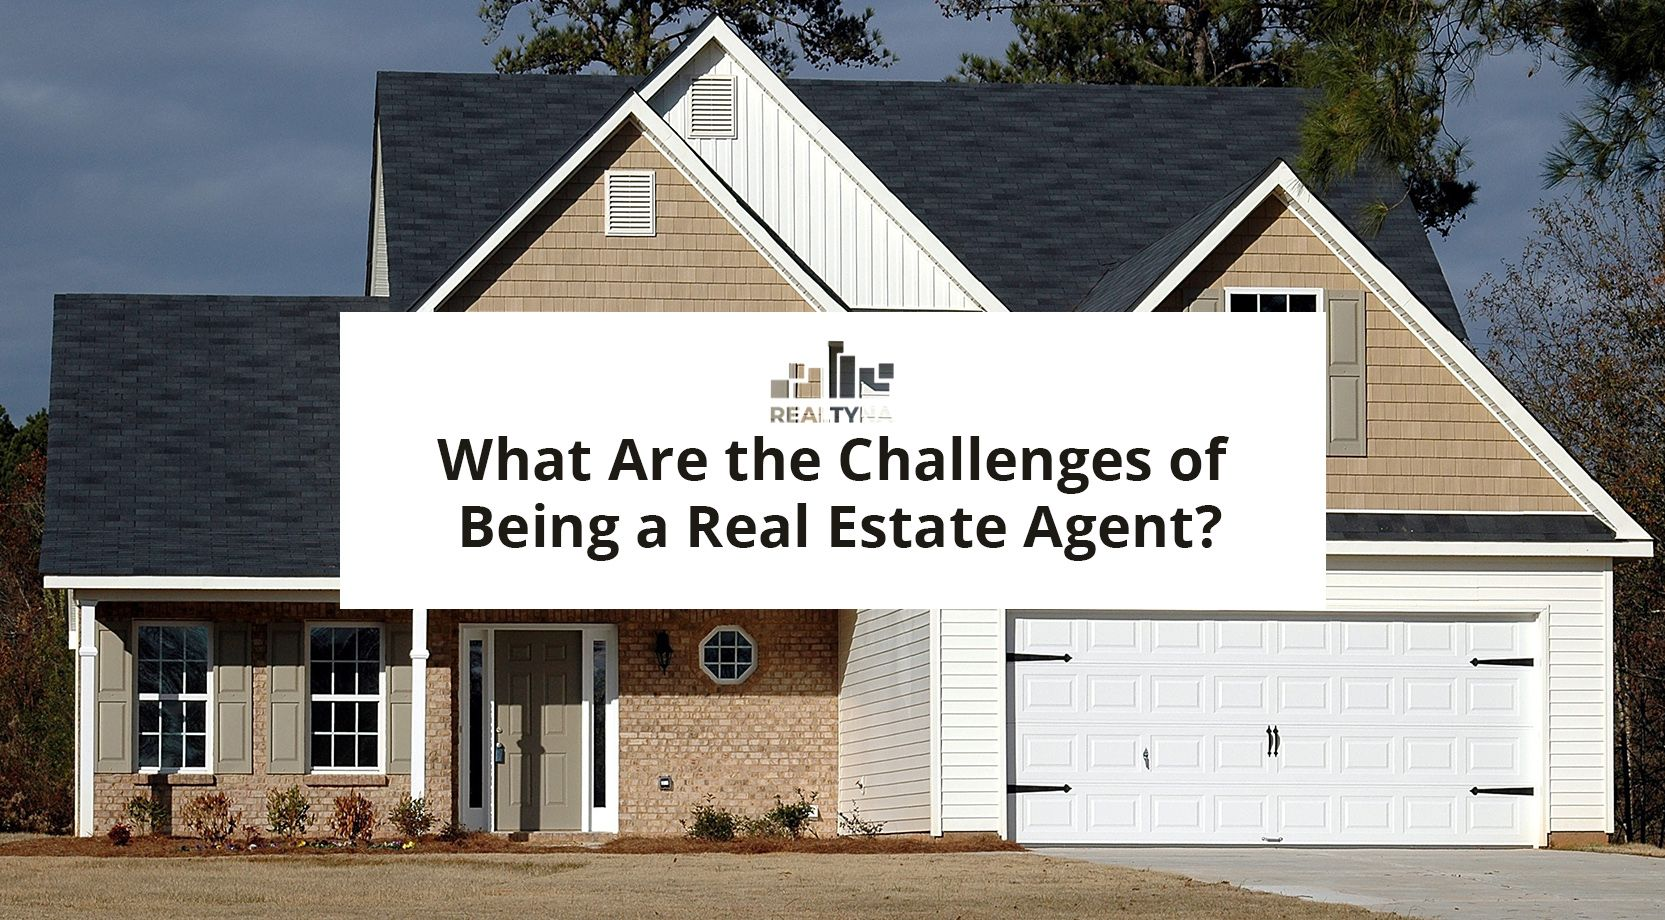 What Are the Challenges of Being a Real Estate Agent?